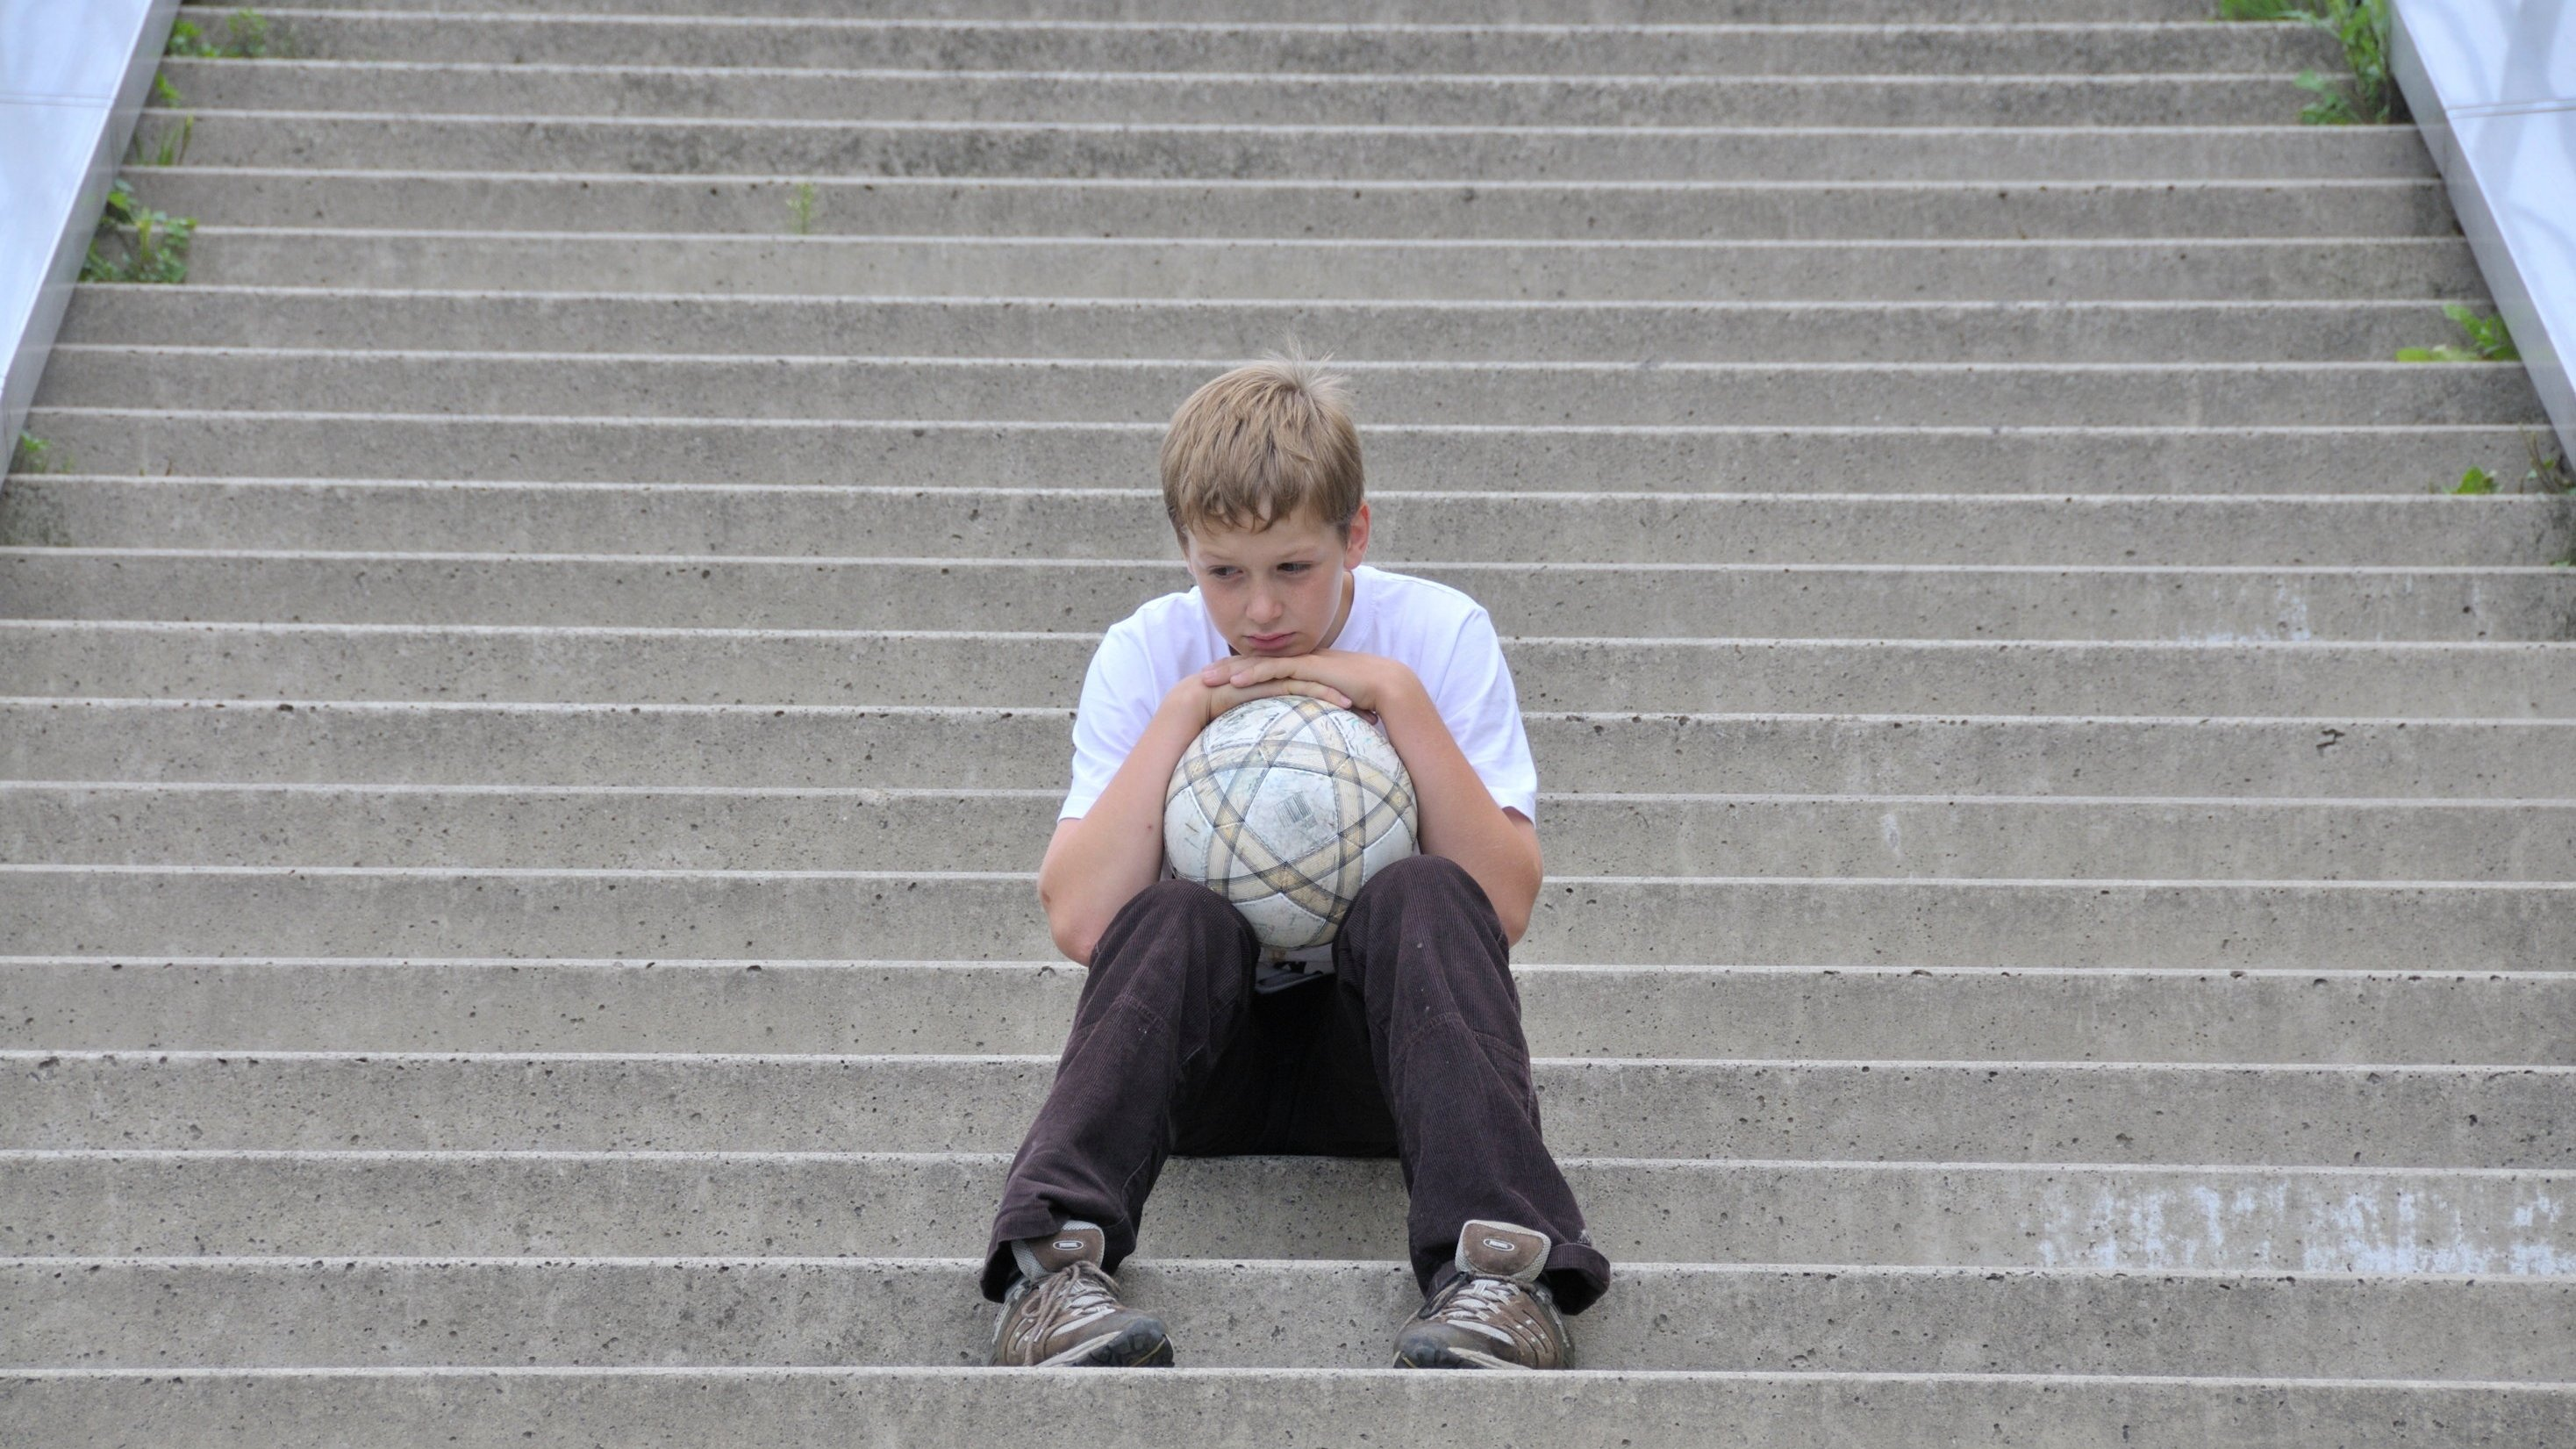 Lonesome boy with football sitting on the stairs - 28.08.2010